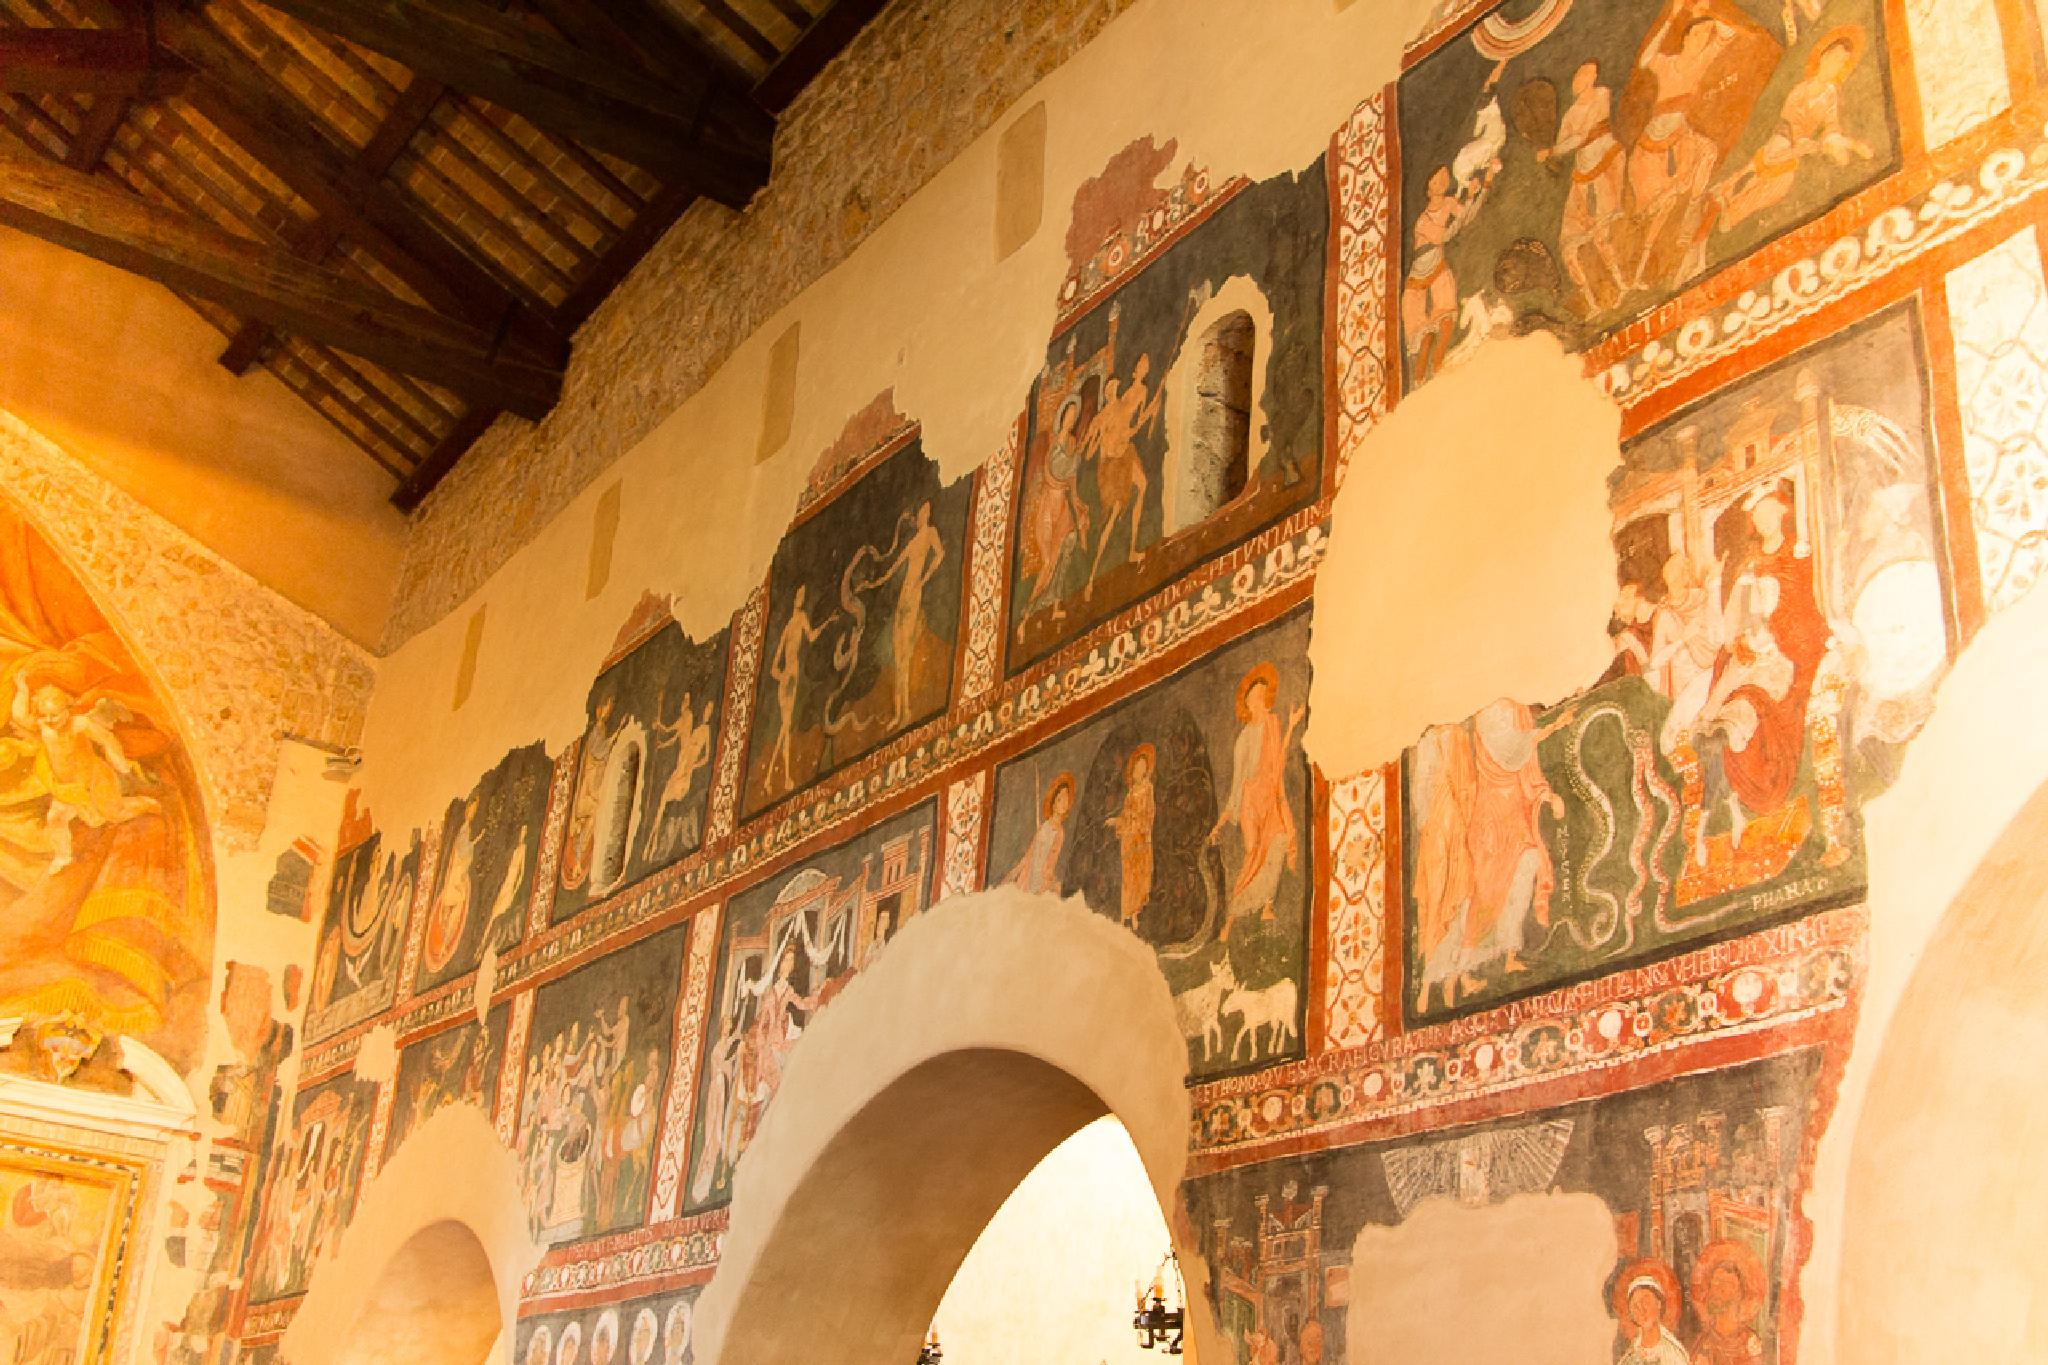 Frescos from the sanctuary of Virgin Mary of Ceri - 1 by Maurizio Fissi